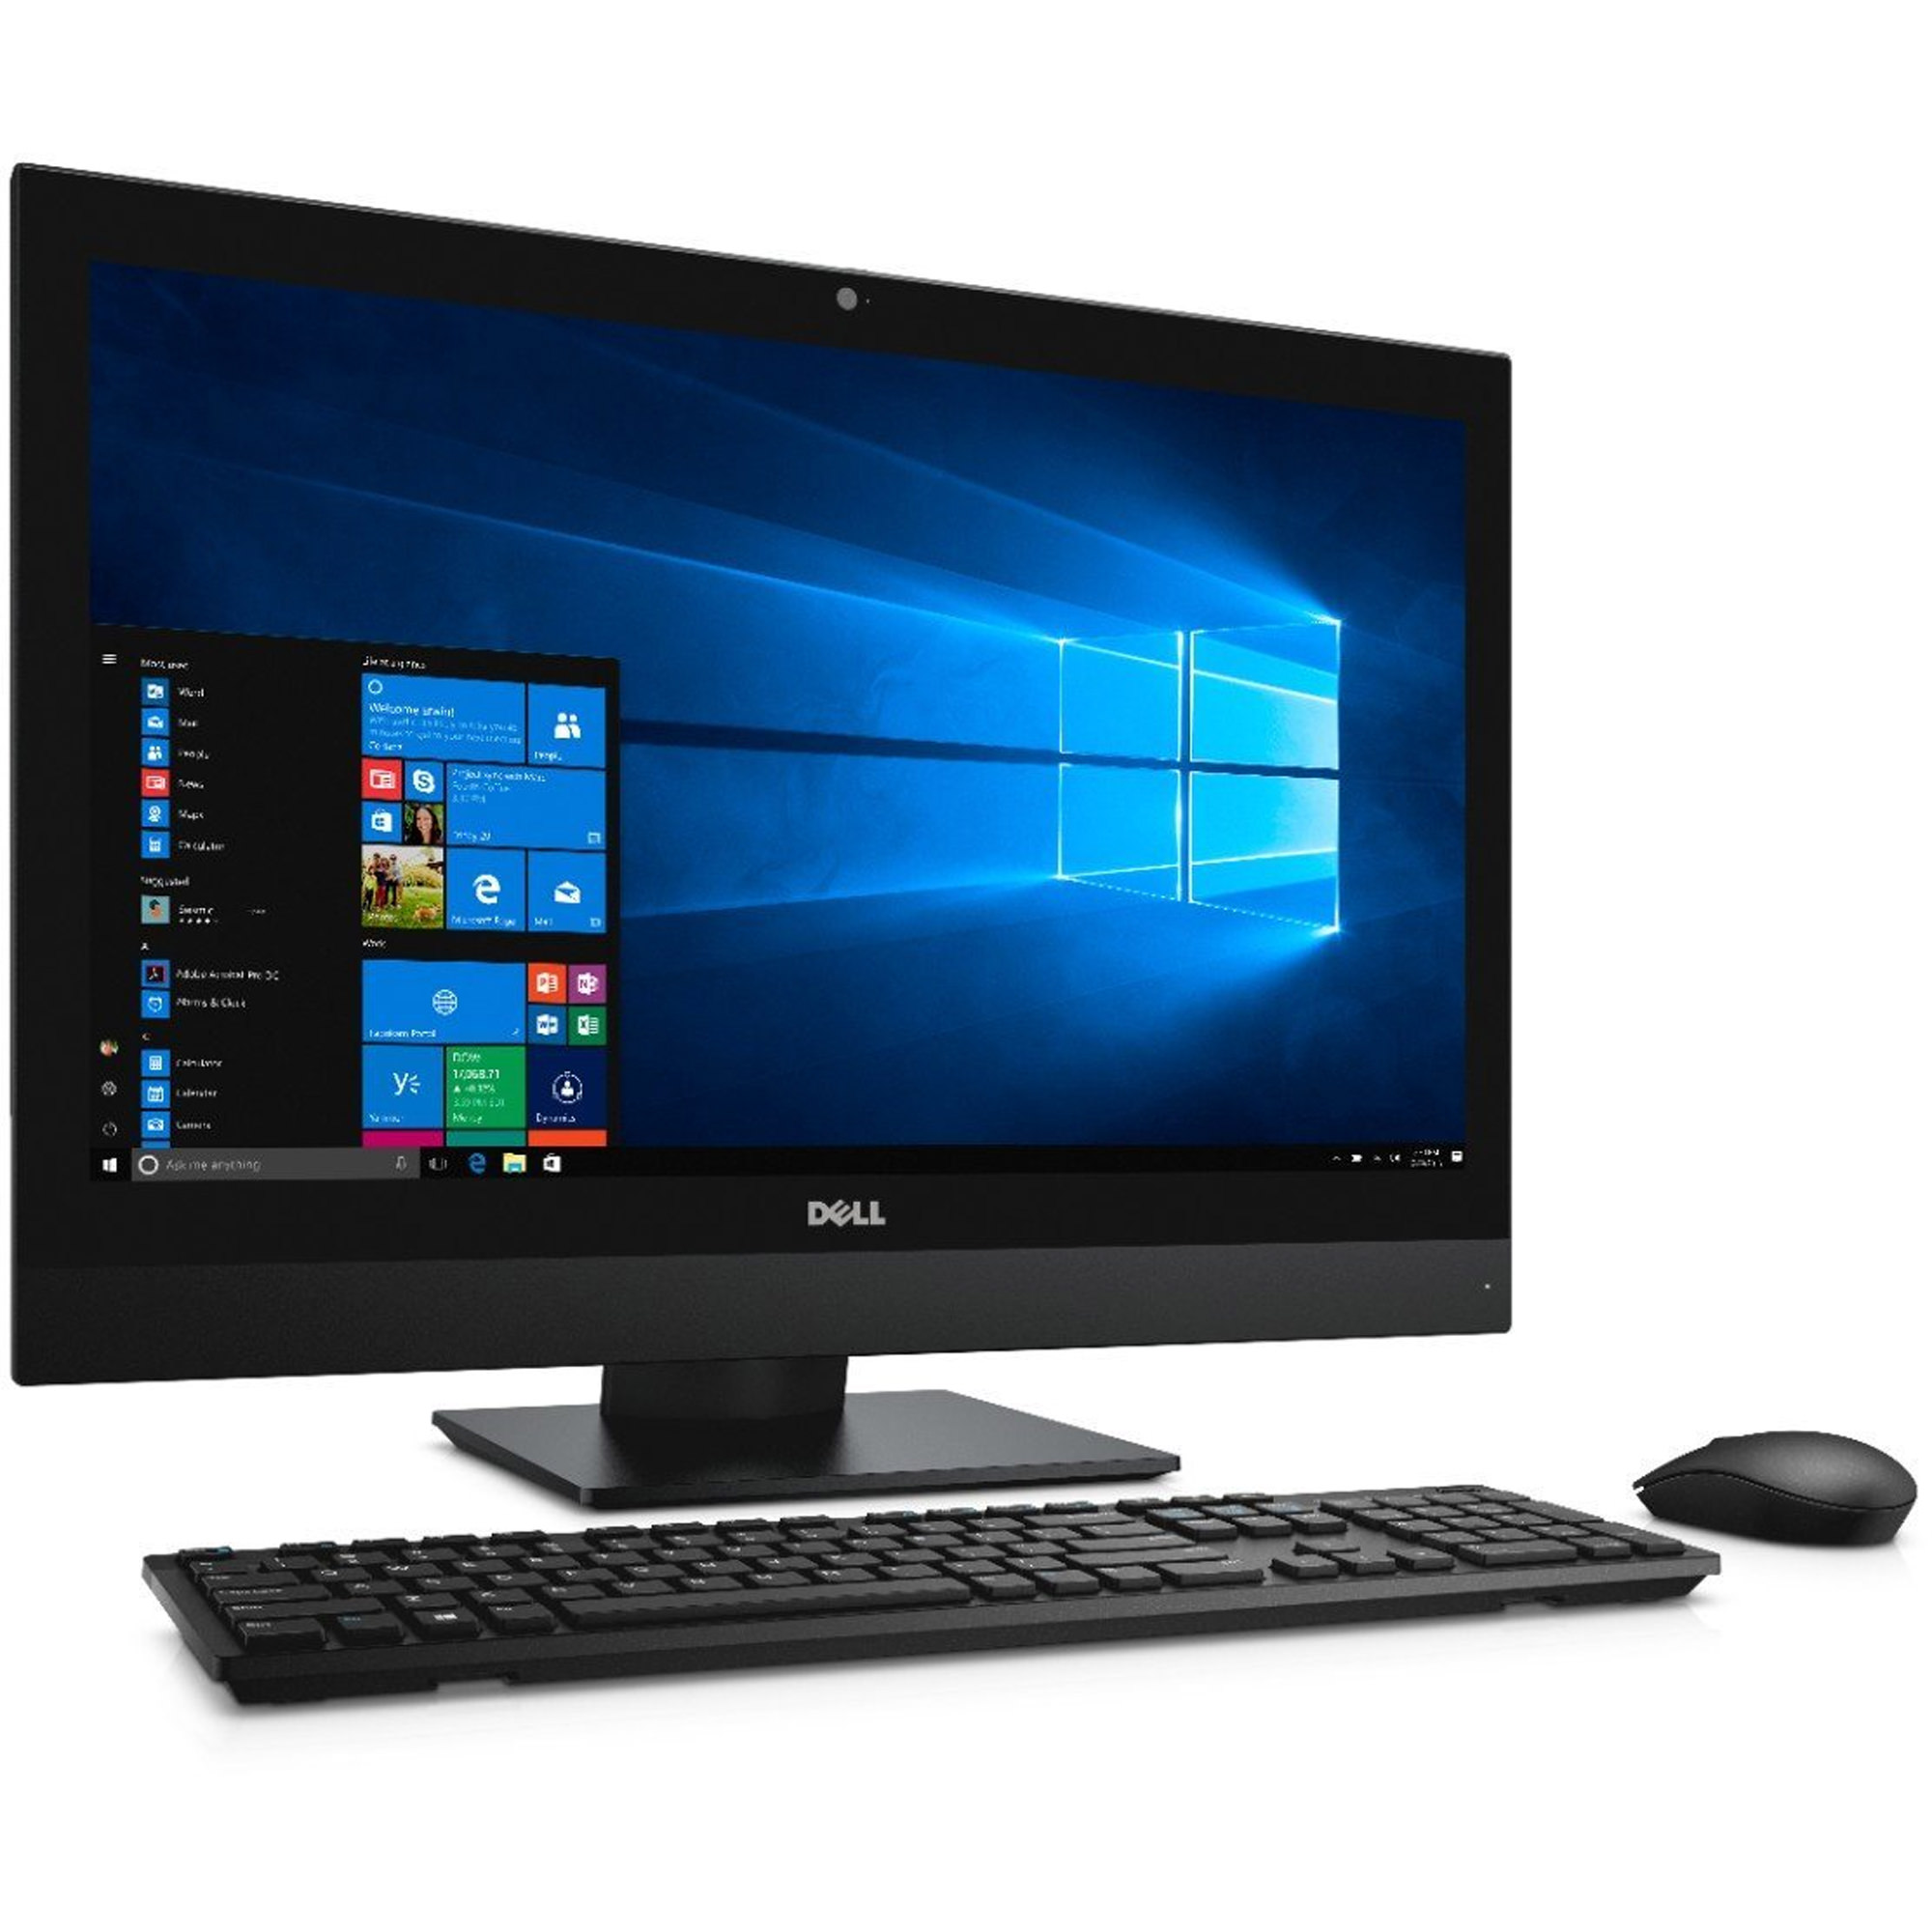 "Dell 23.8"" OptiPlex 7450 All-in-One Desktop Computer"